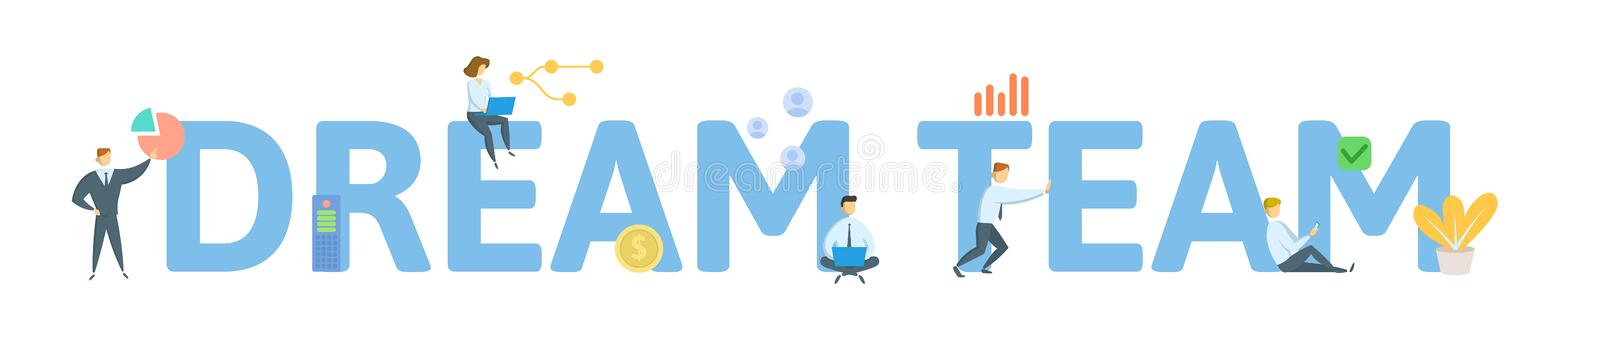 DREAM TEAM. Concept with people, letters and icons. Flat vector illustration. Isolated on white background. DREAM TEAM. Concept with people, letters and icons vector illustration